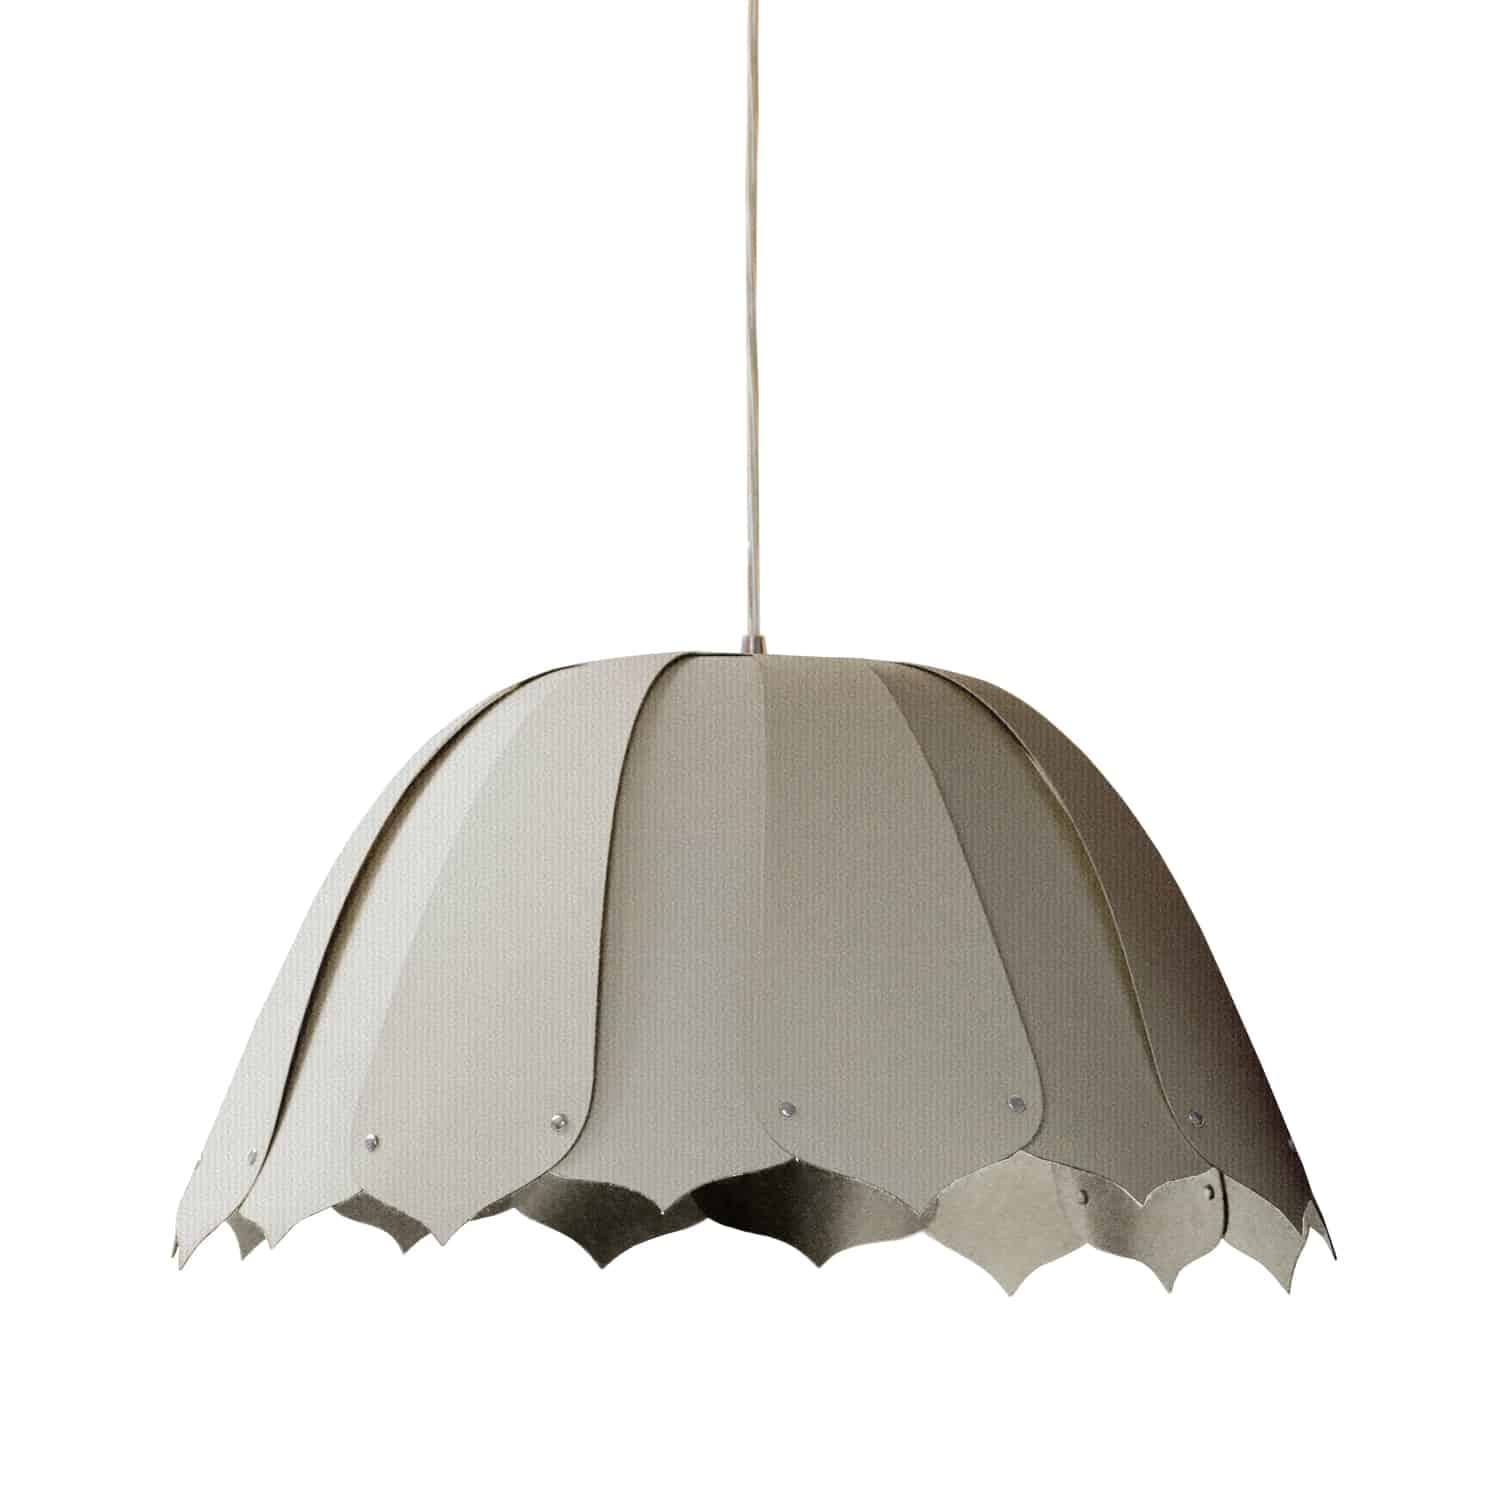 1 Light Noa Pendant Camelot Grey Small Polished Chrome